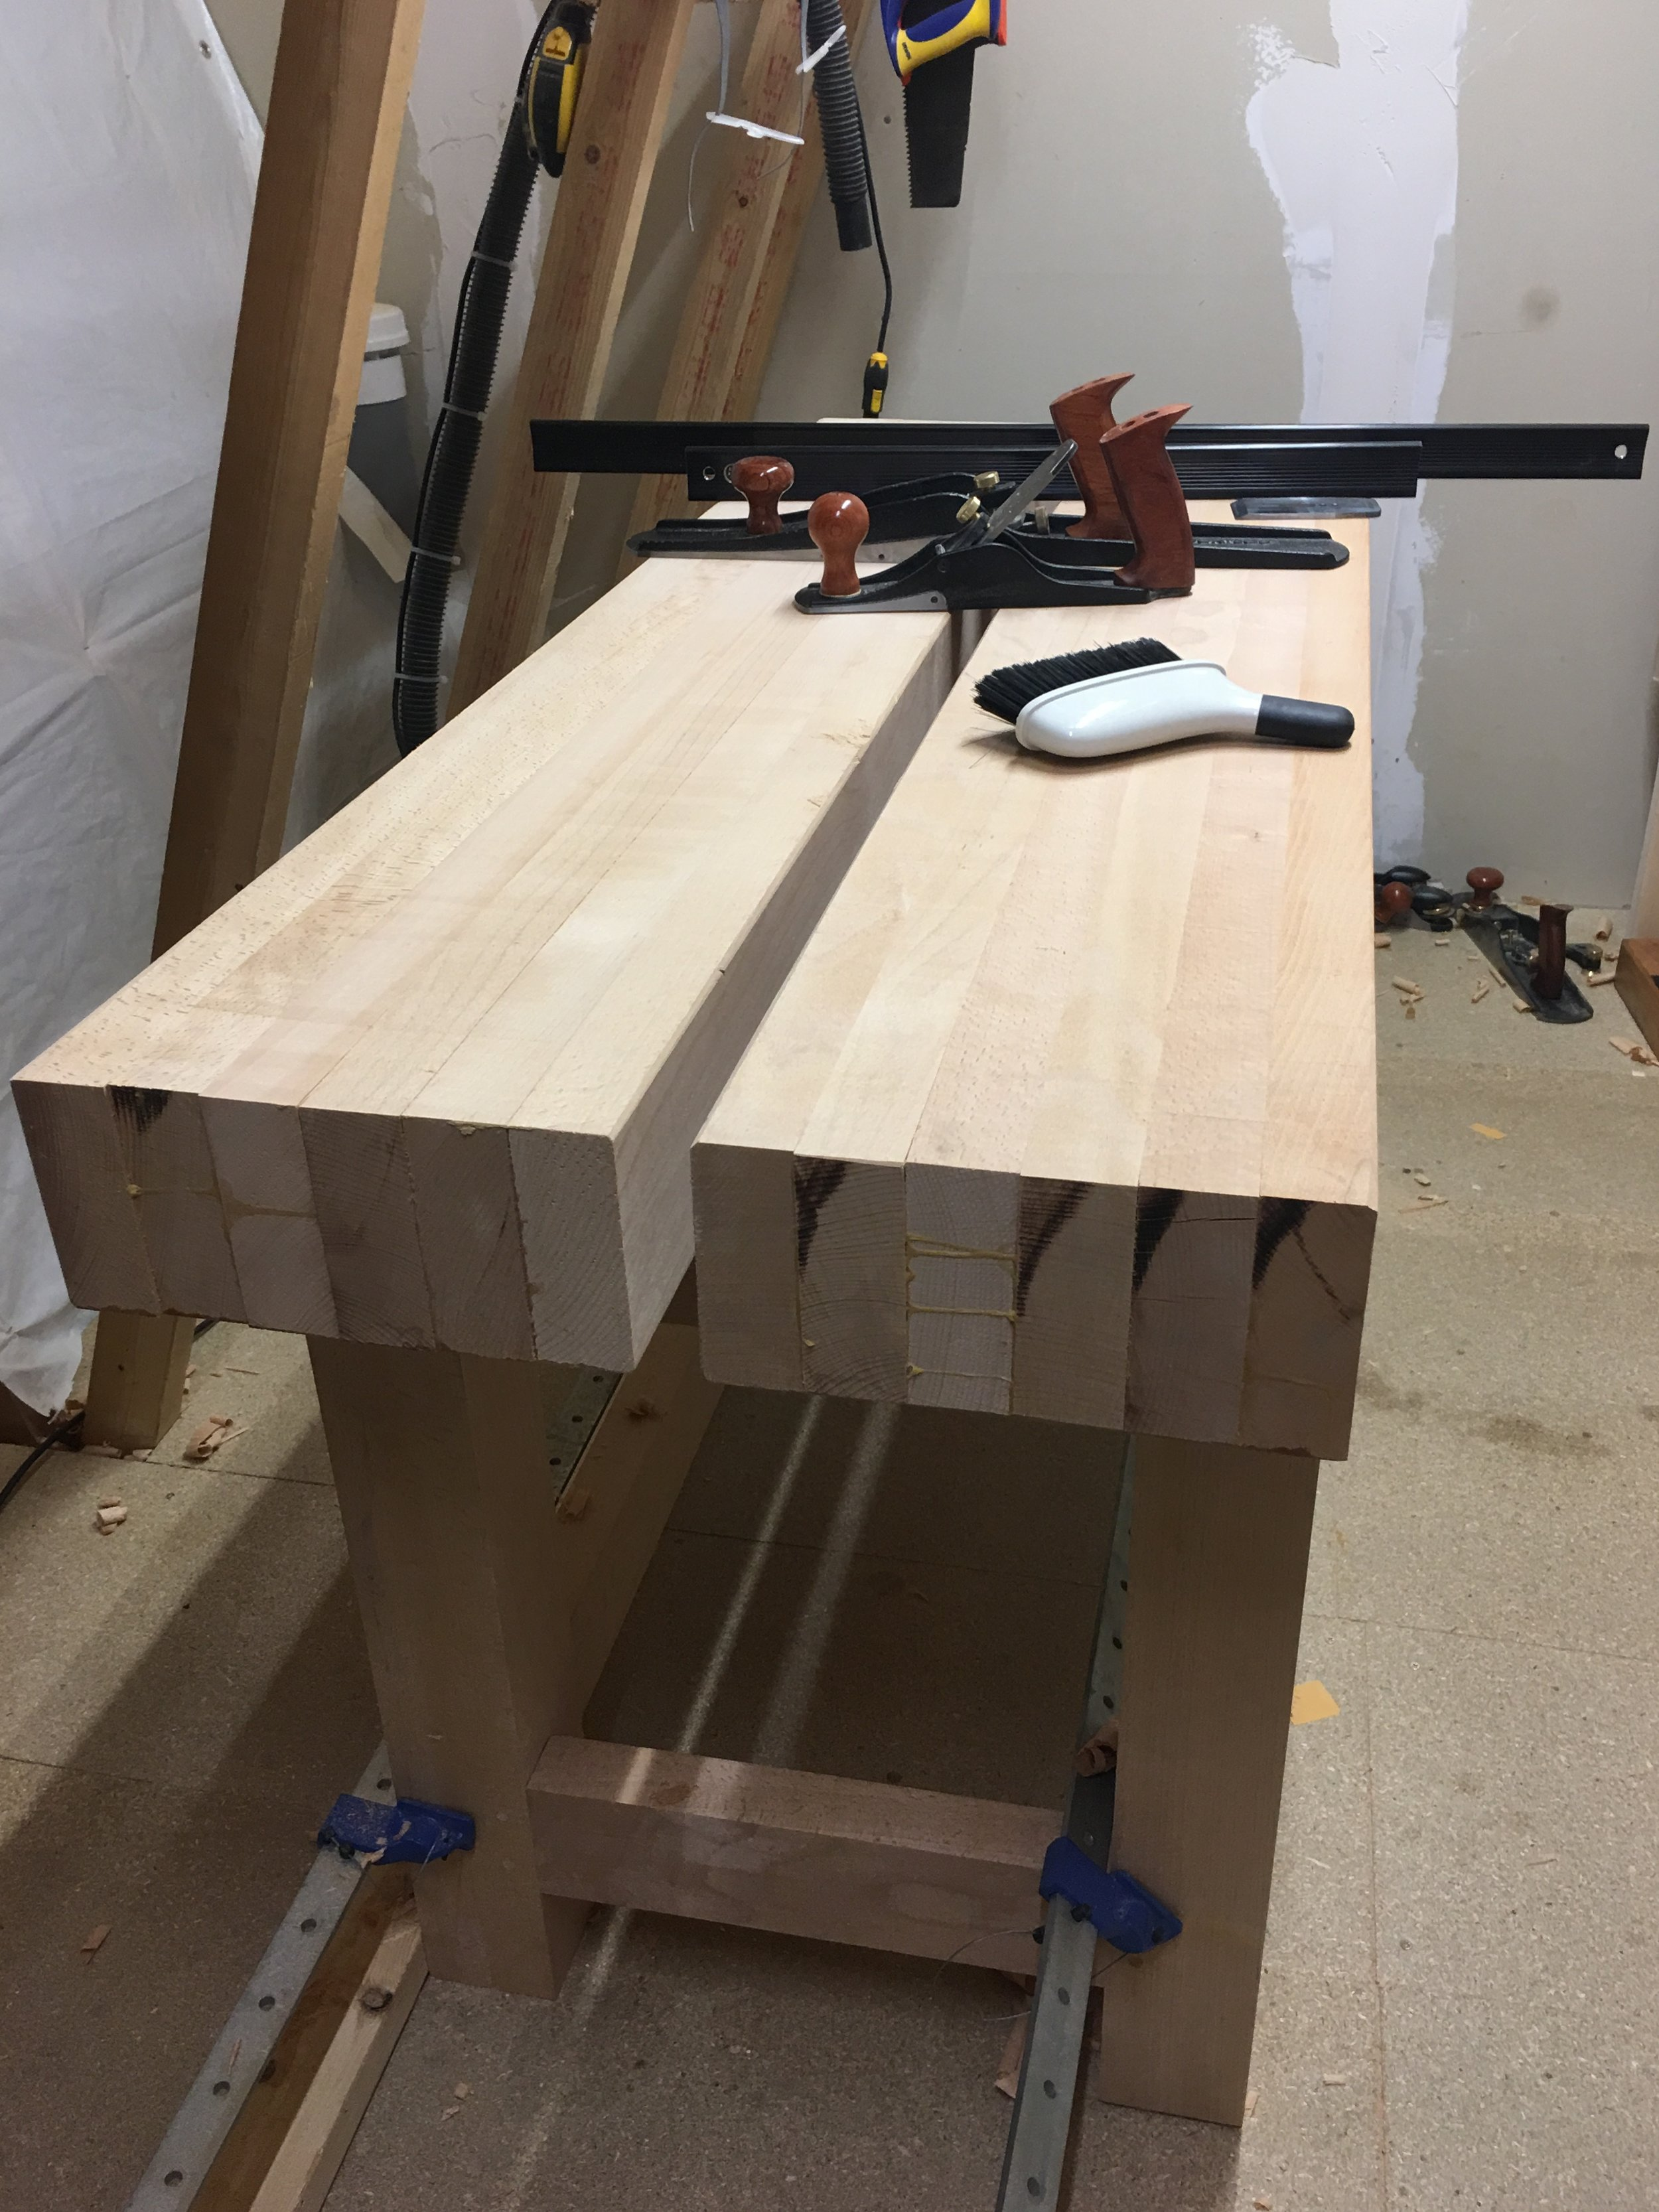 The Top after a rough flattening.